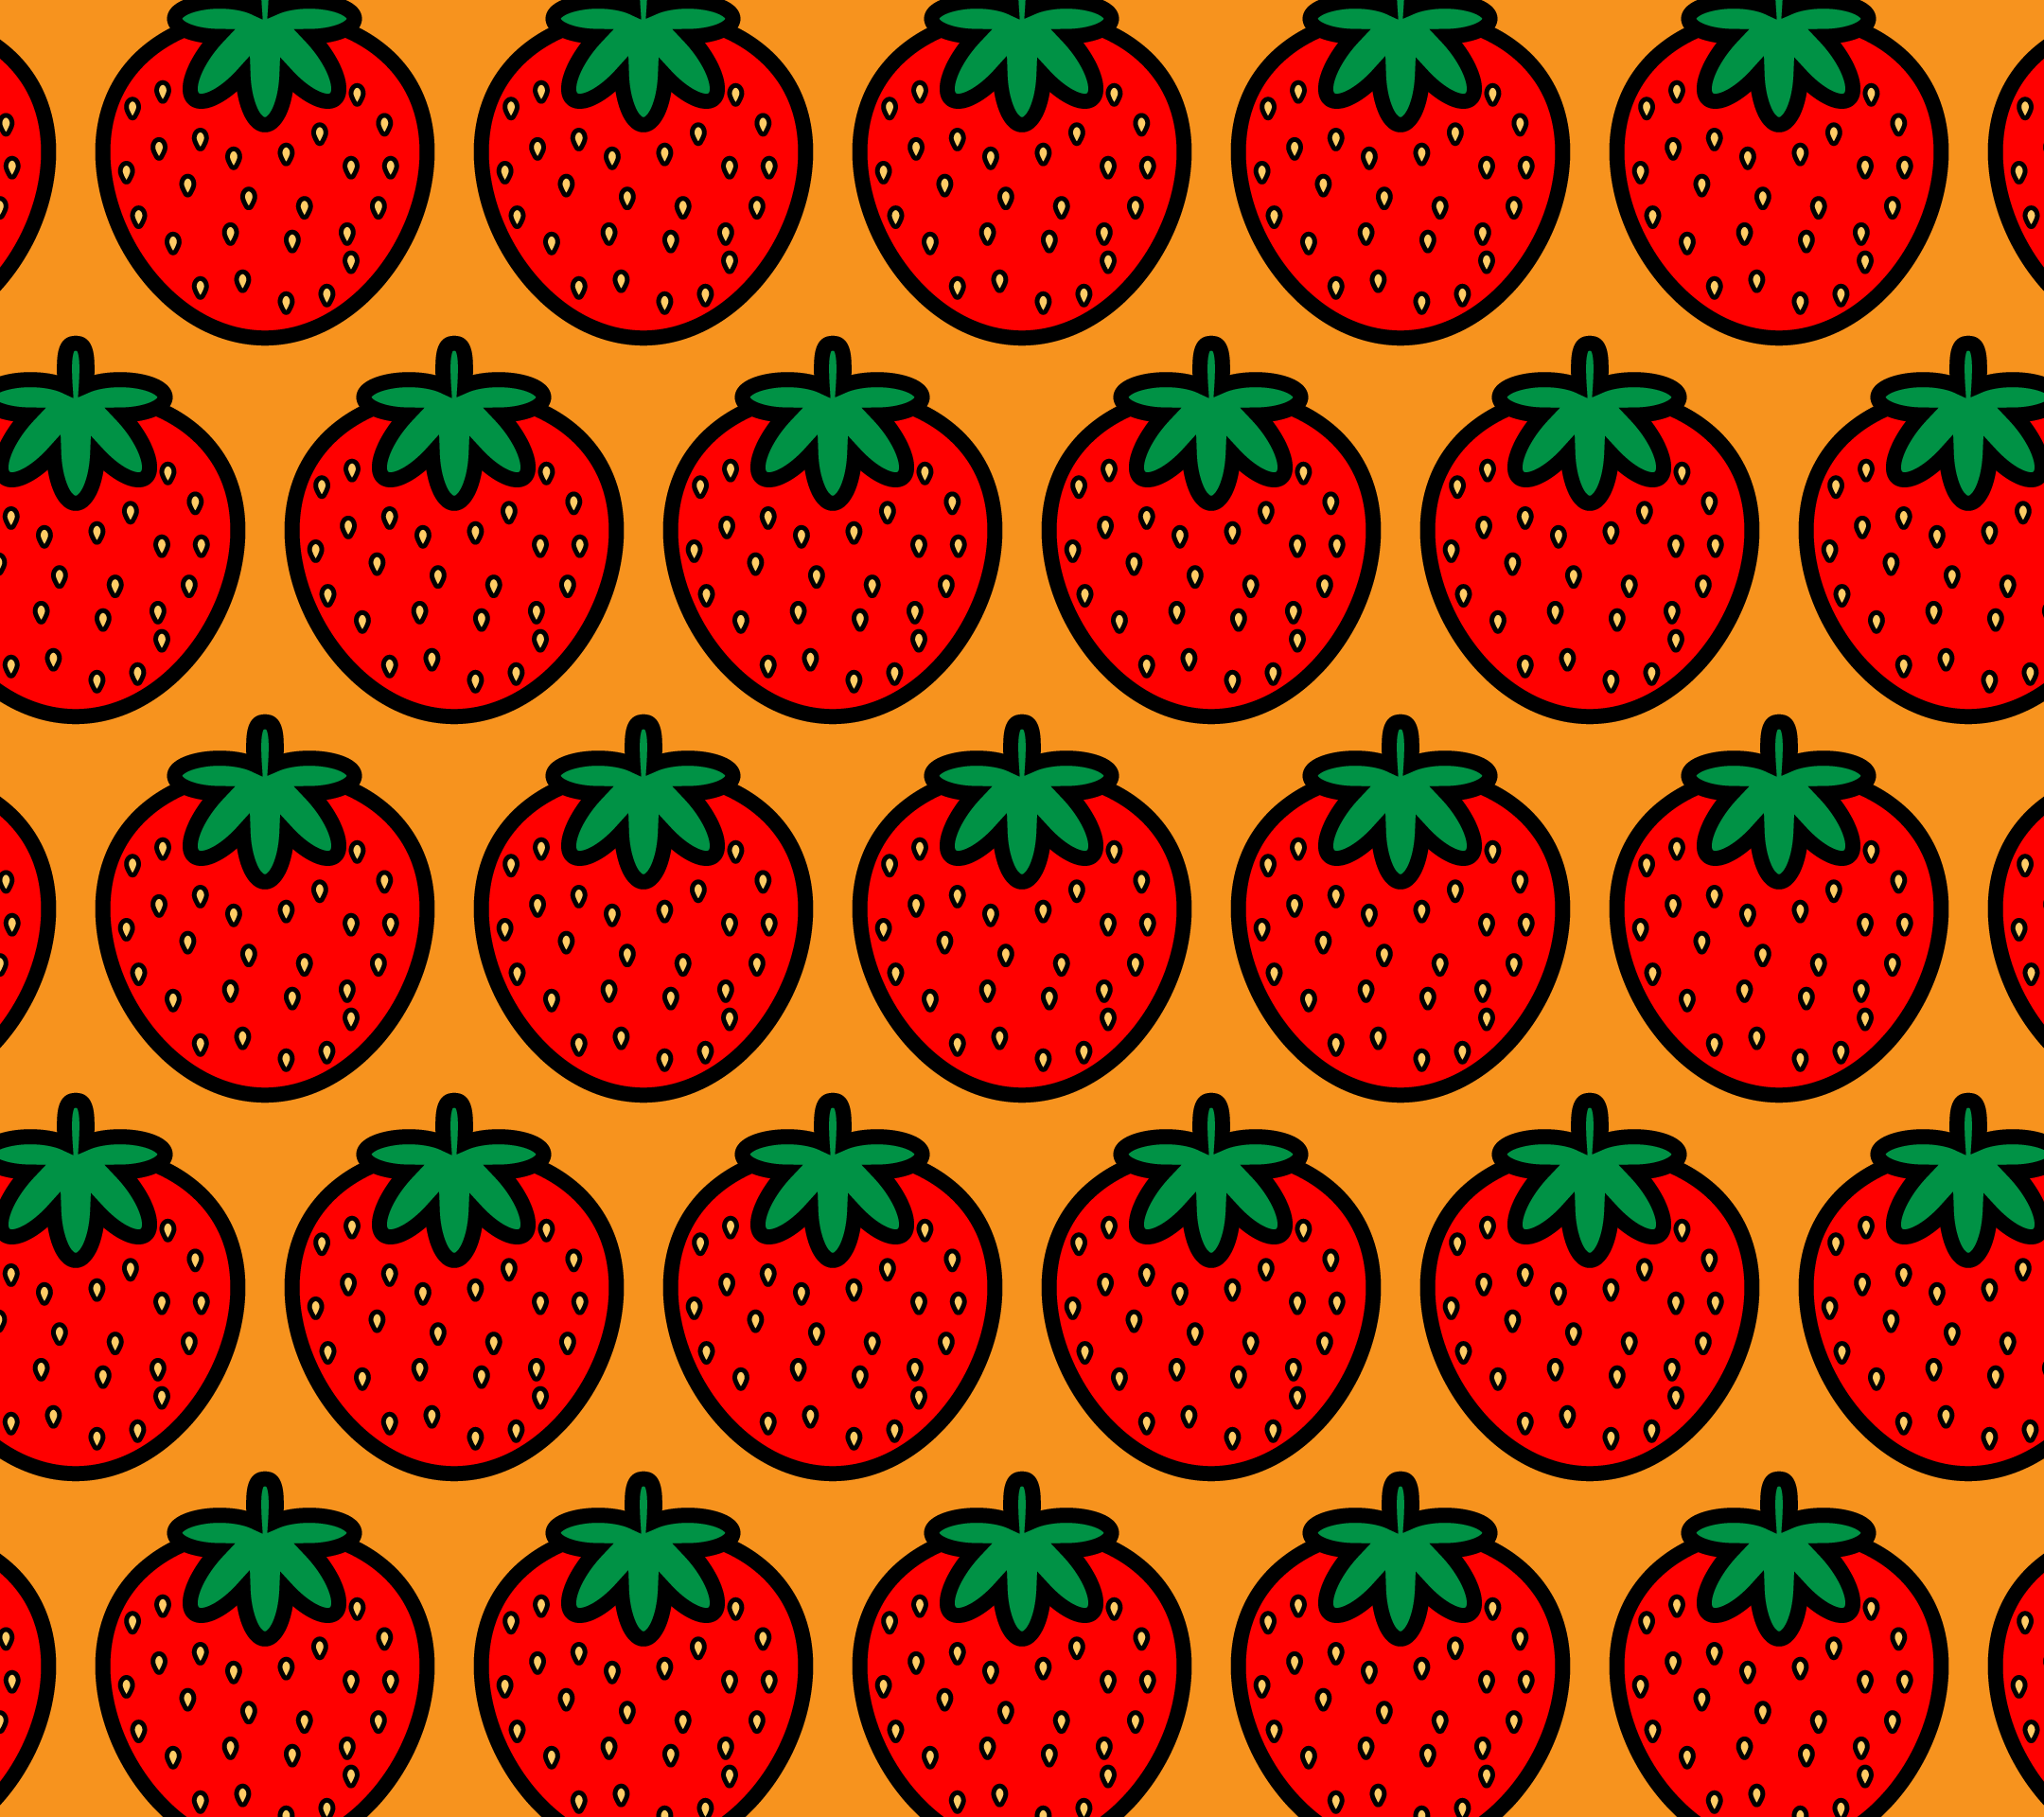 wallpaper1_strawberry-fill-orange-android